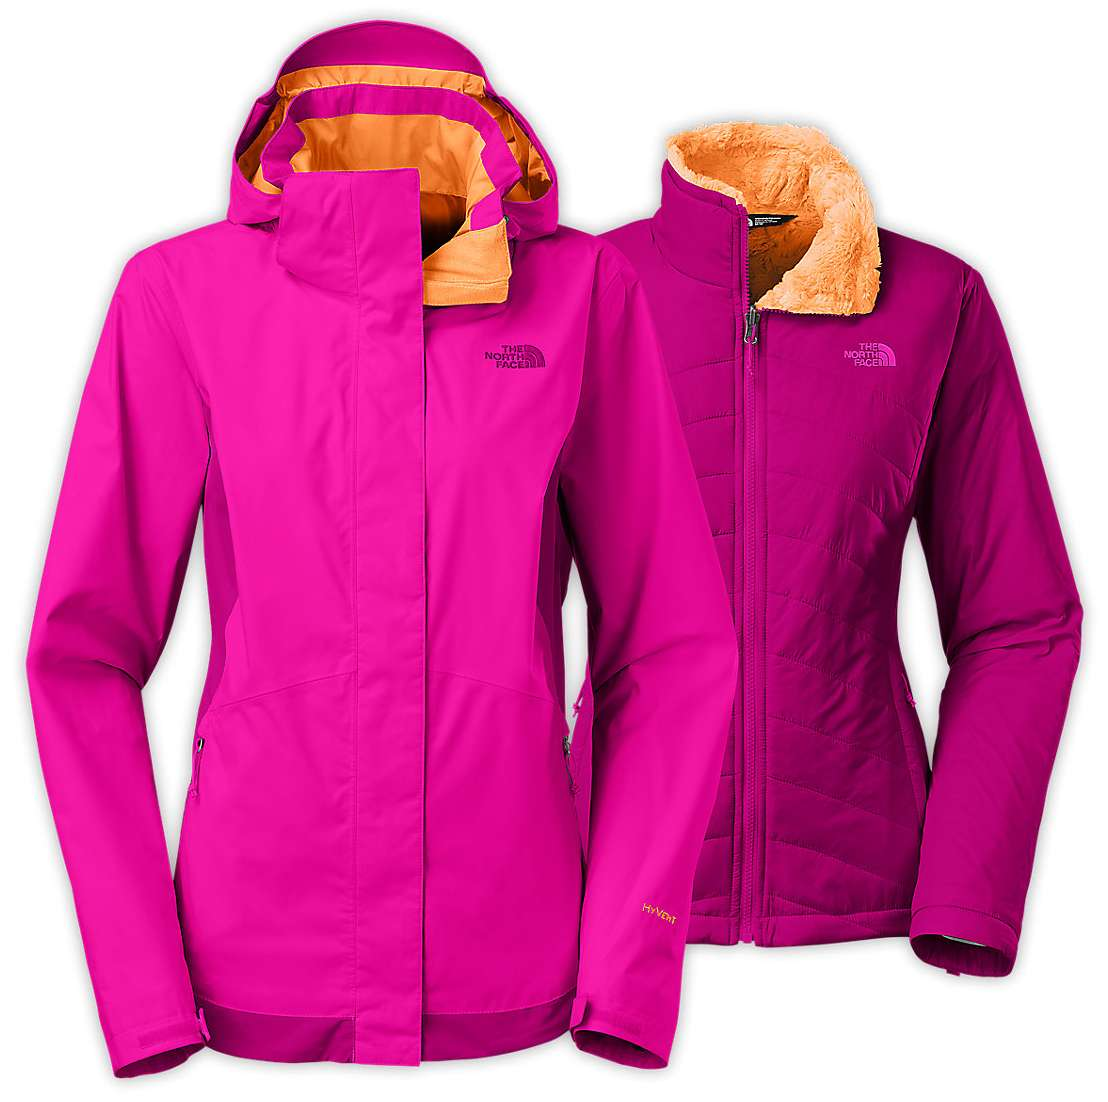 1ba58c4c11c4 The North Face W MOSSBUD SWIRL TRICLIMATE JACKET